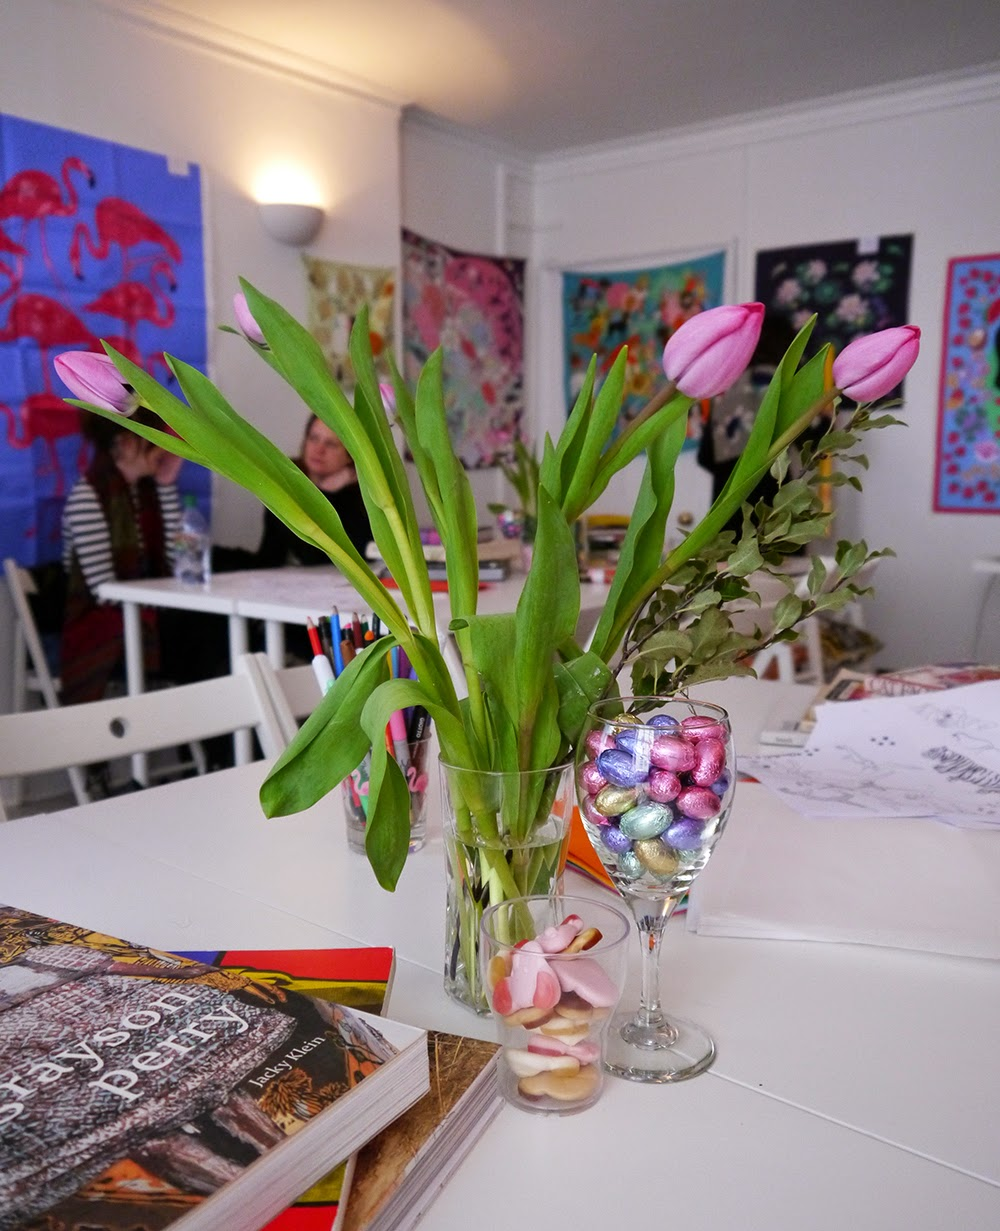 Edinburgh, Scottish Bloggers, Karen Mabon, Scraf School, Scarf Design, Hill Street Design House, sweets, tulips, inspiration, craft, design